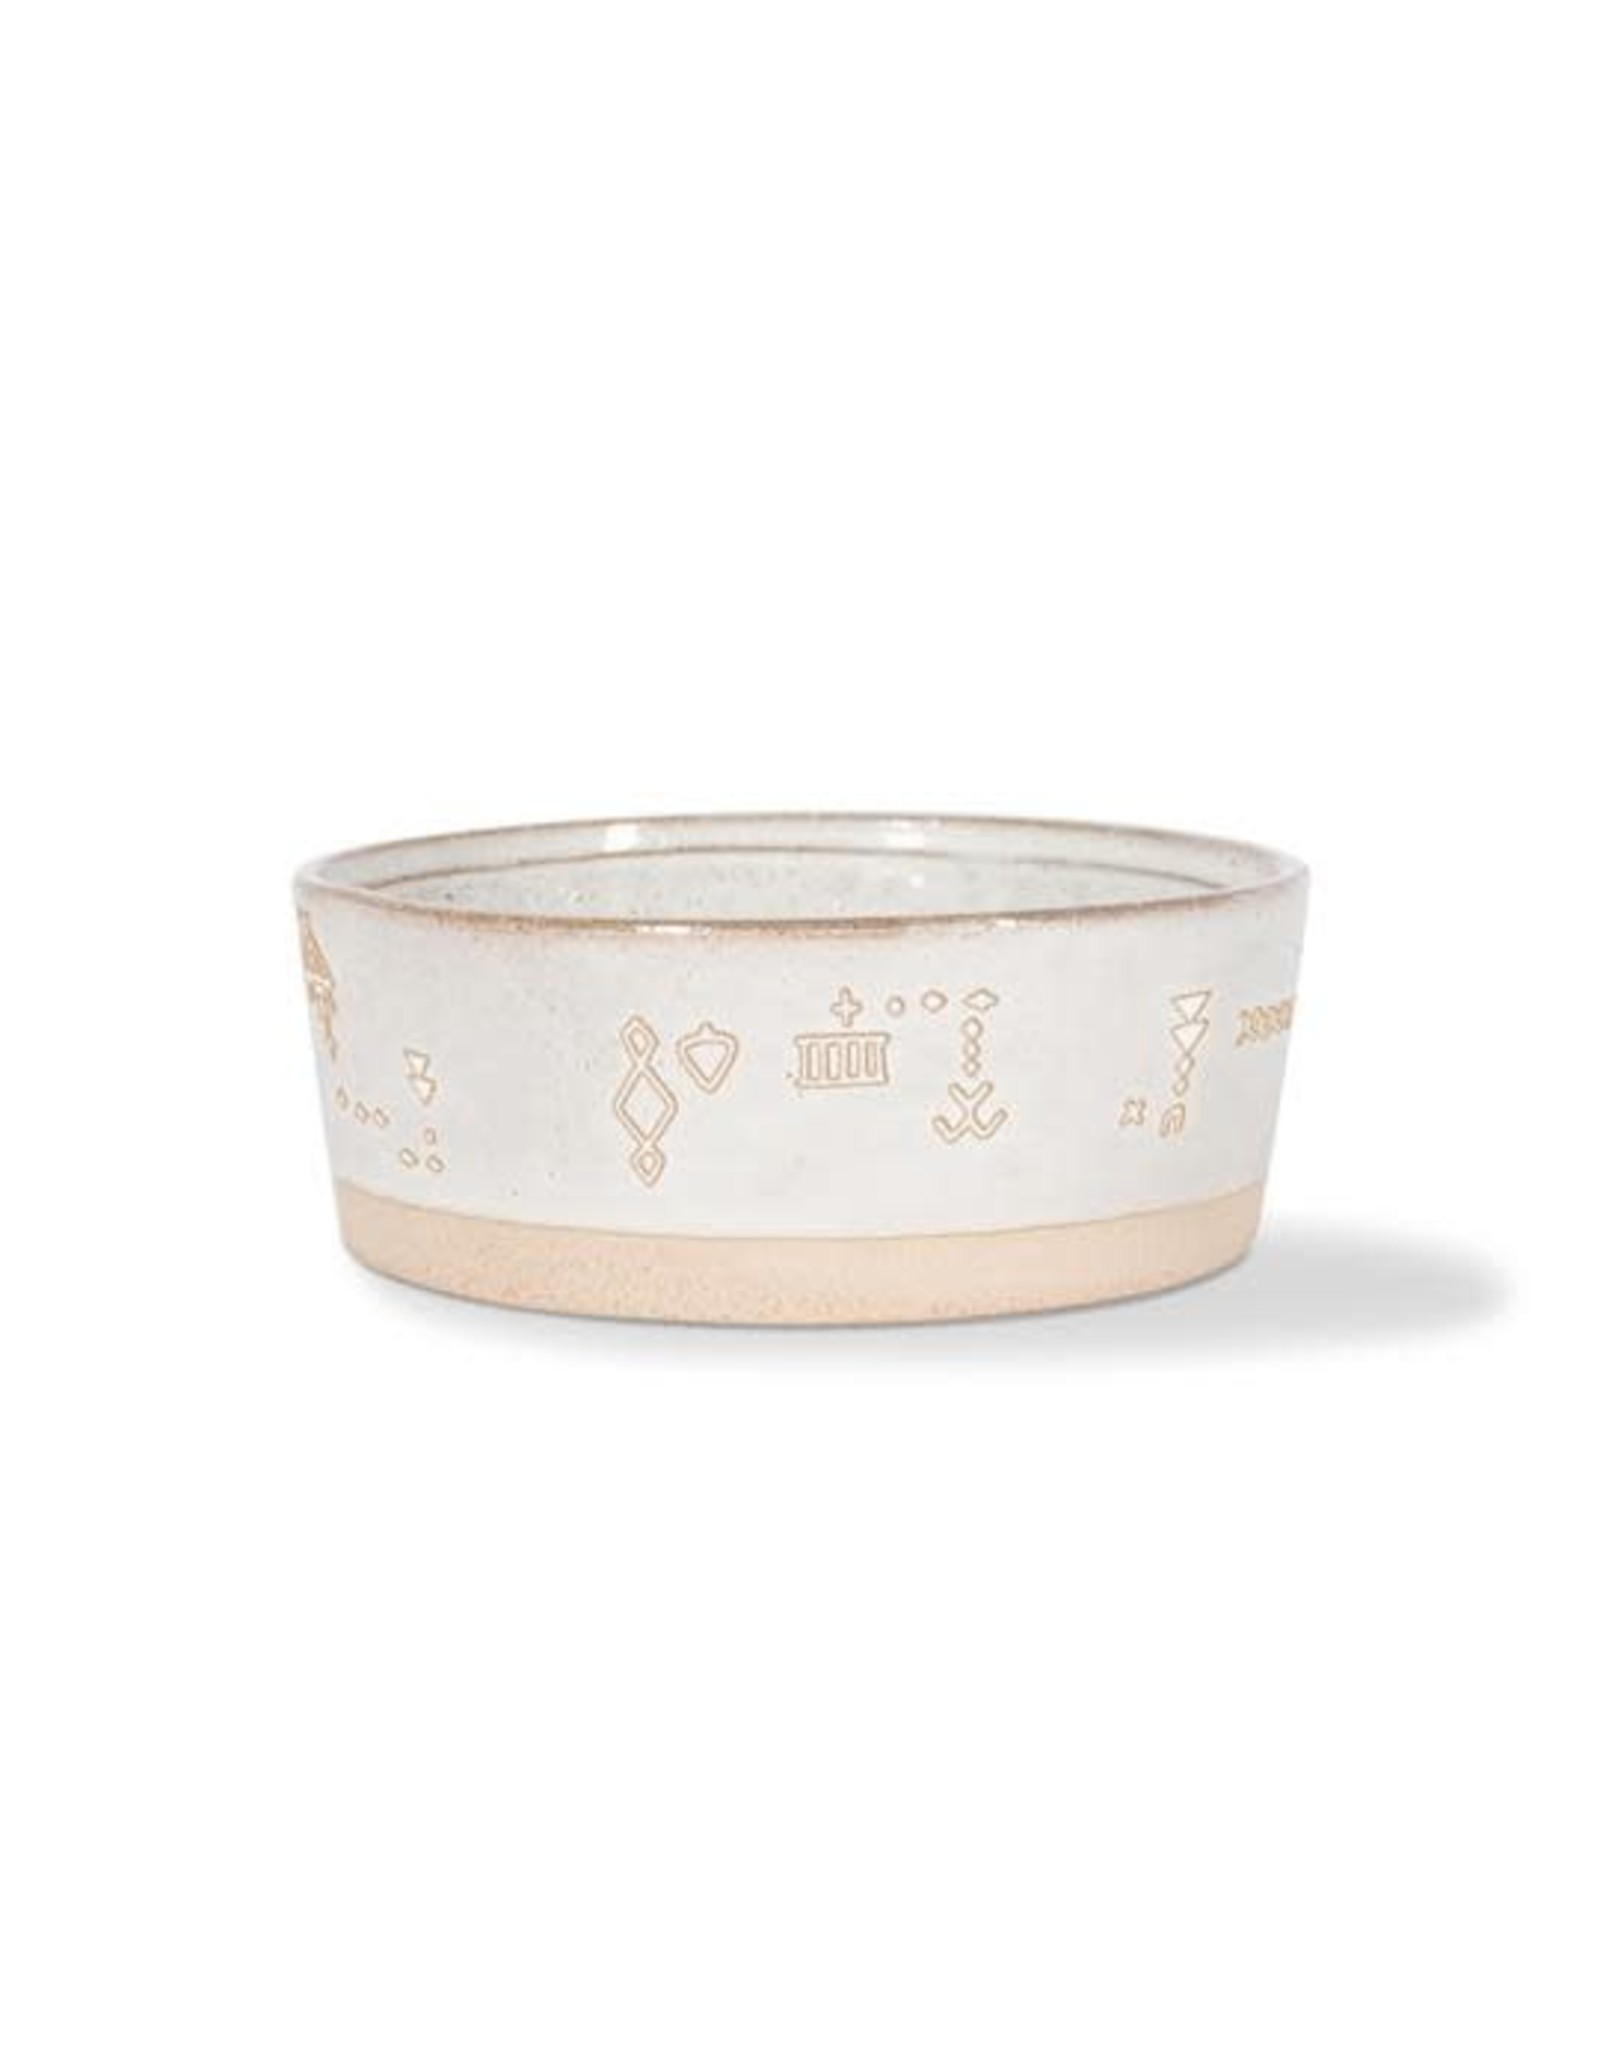 Pet Shop by Fringe Studio FRINGE STUDIO TRIBAL MARKS WHITE PET BOWL